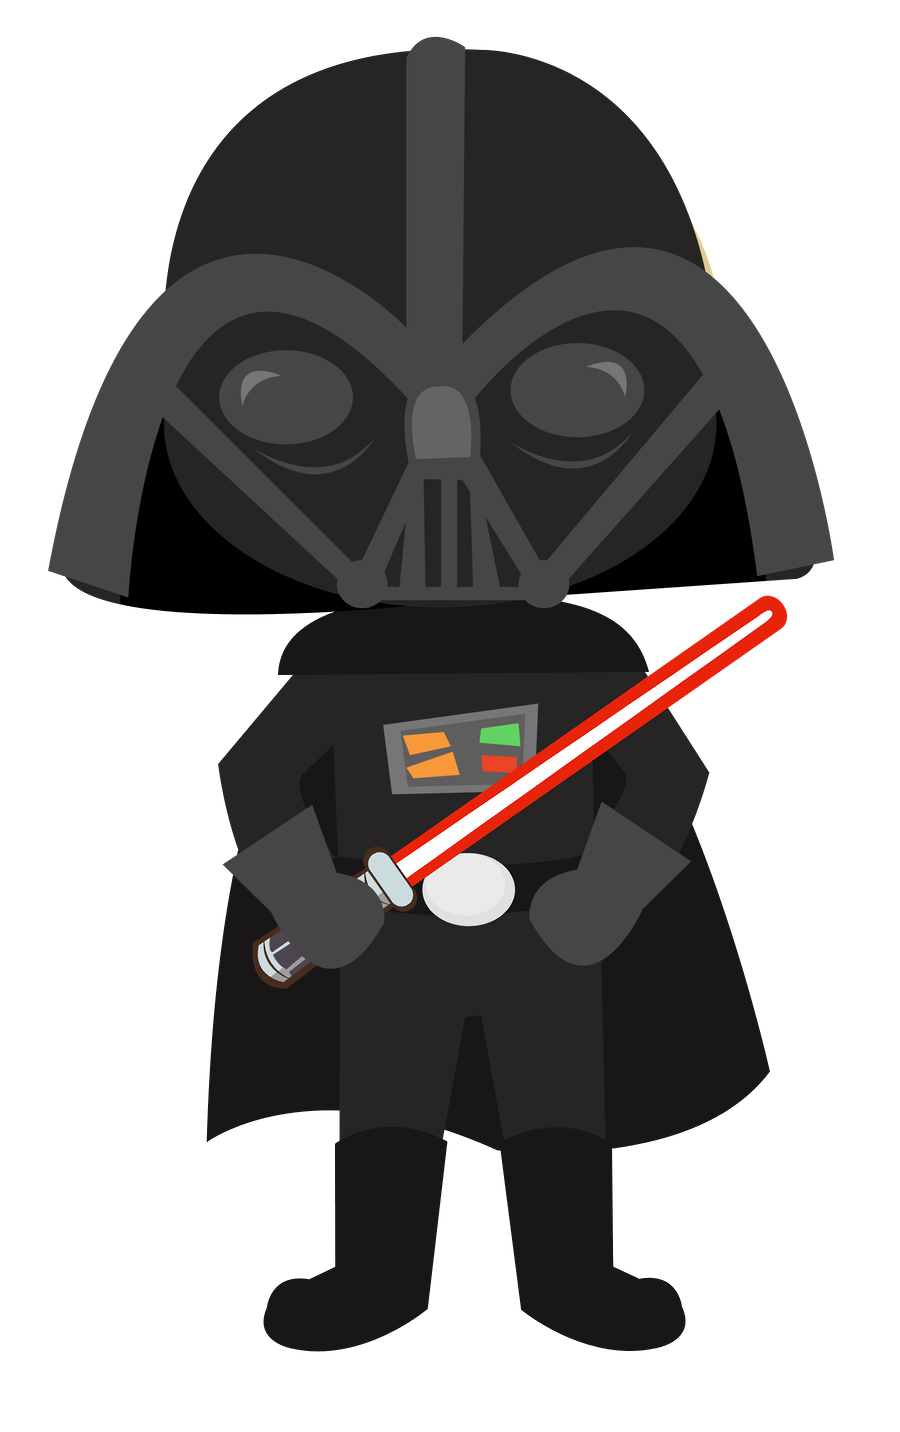 star wars minus felt board images pinterest star darth rh pinterest com darth vader face clipart darth vader clip art free